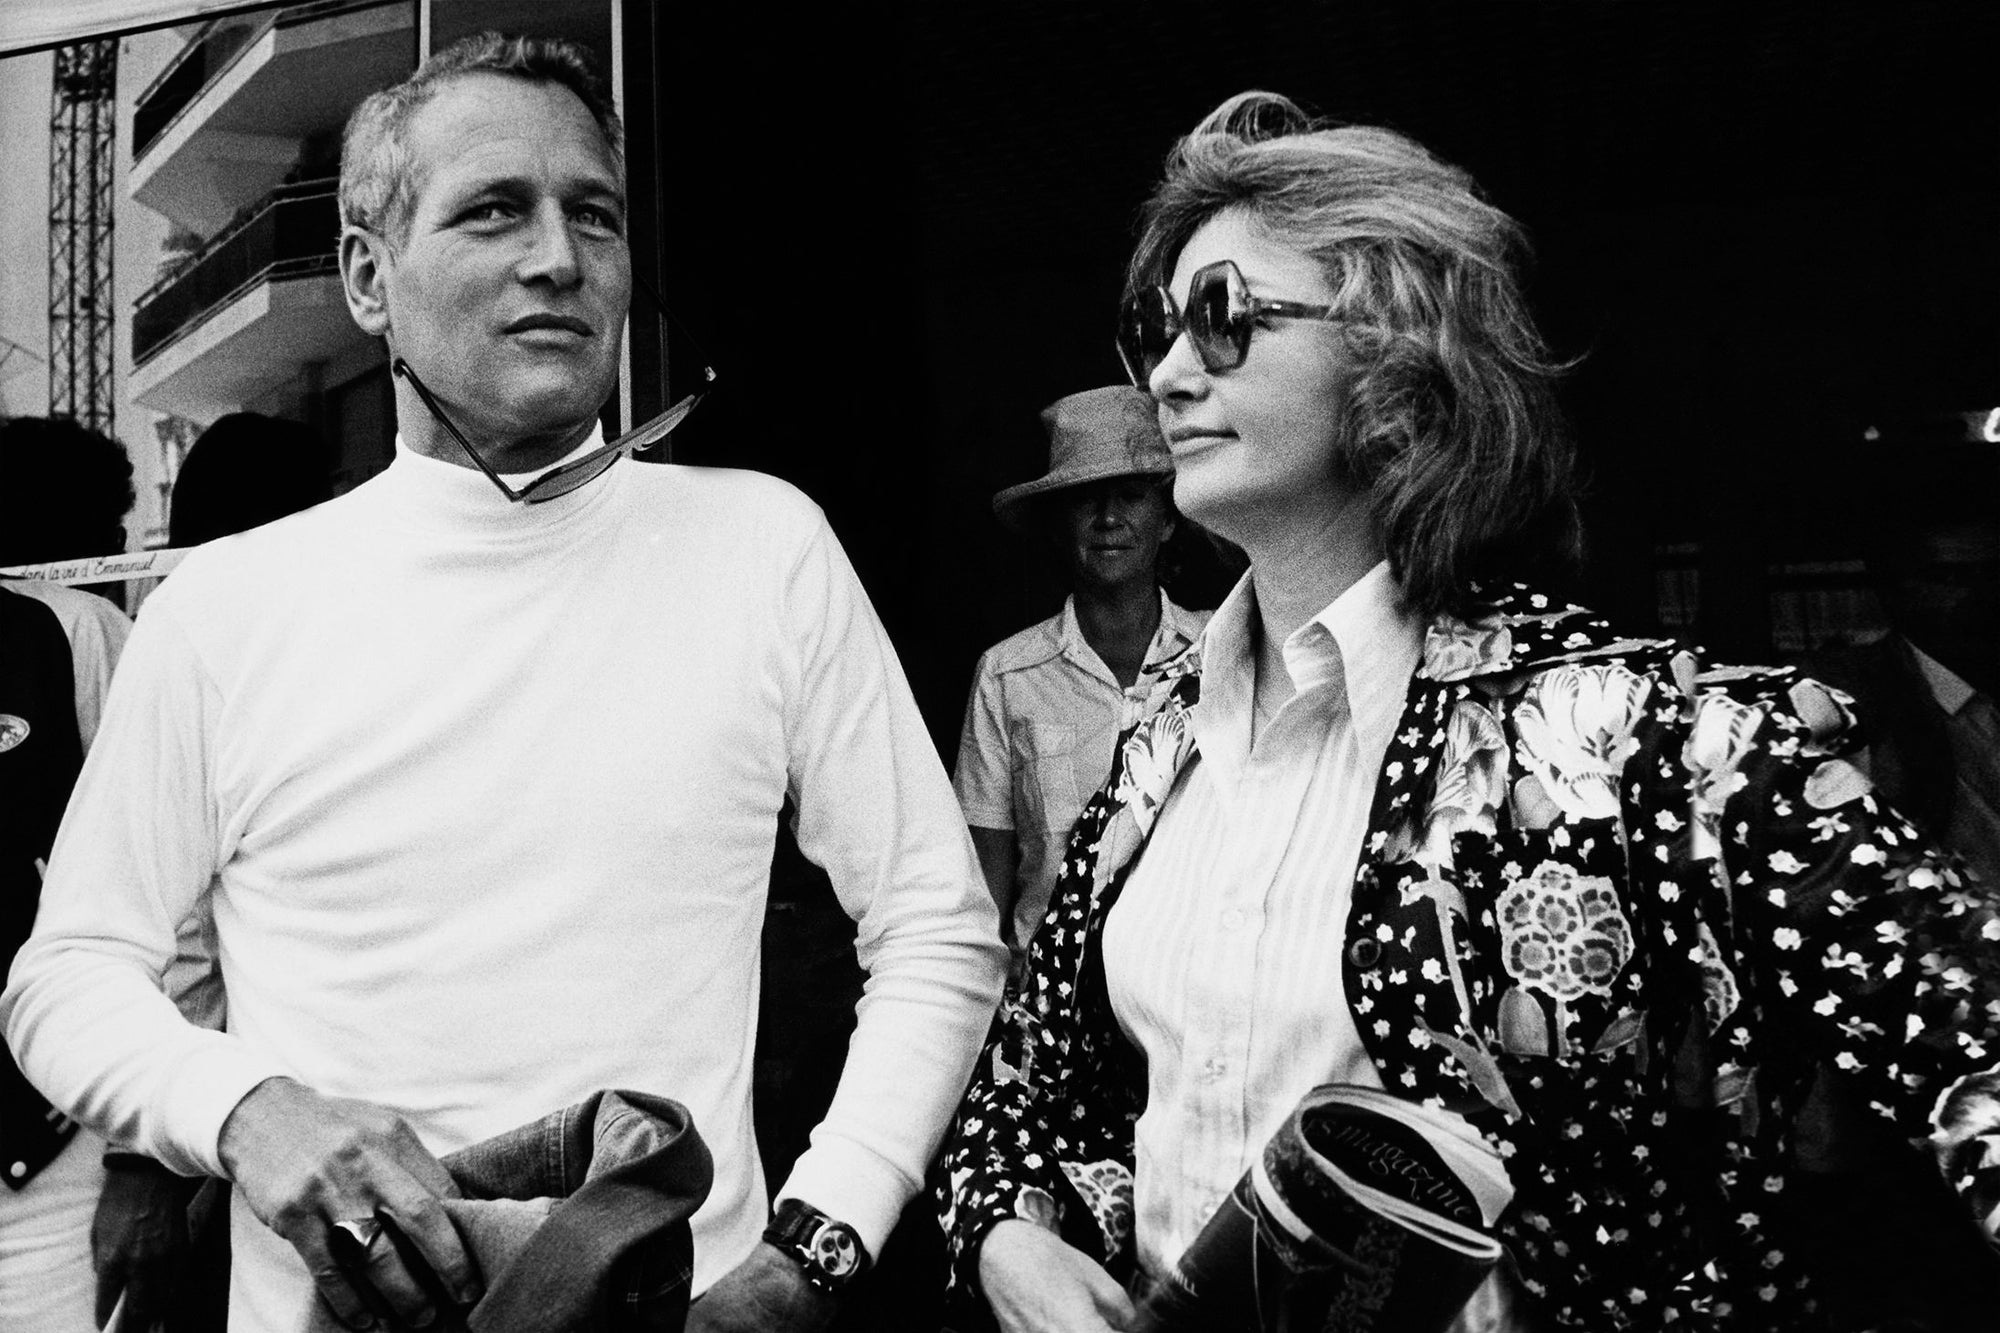 Paul Newman wearing the Rolex Daytona and Joanne Woodward at the 1973 Cannes Film Festival